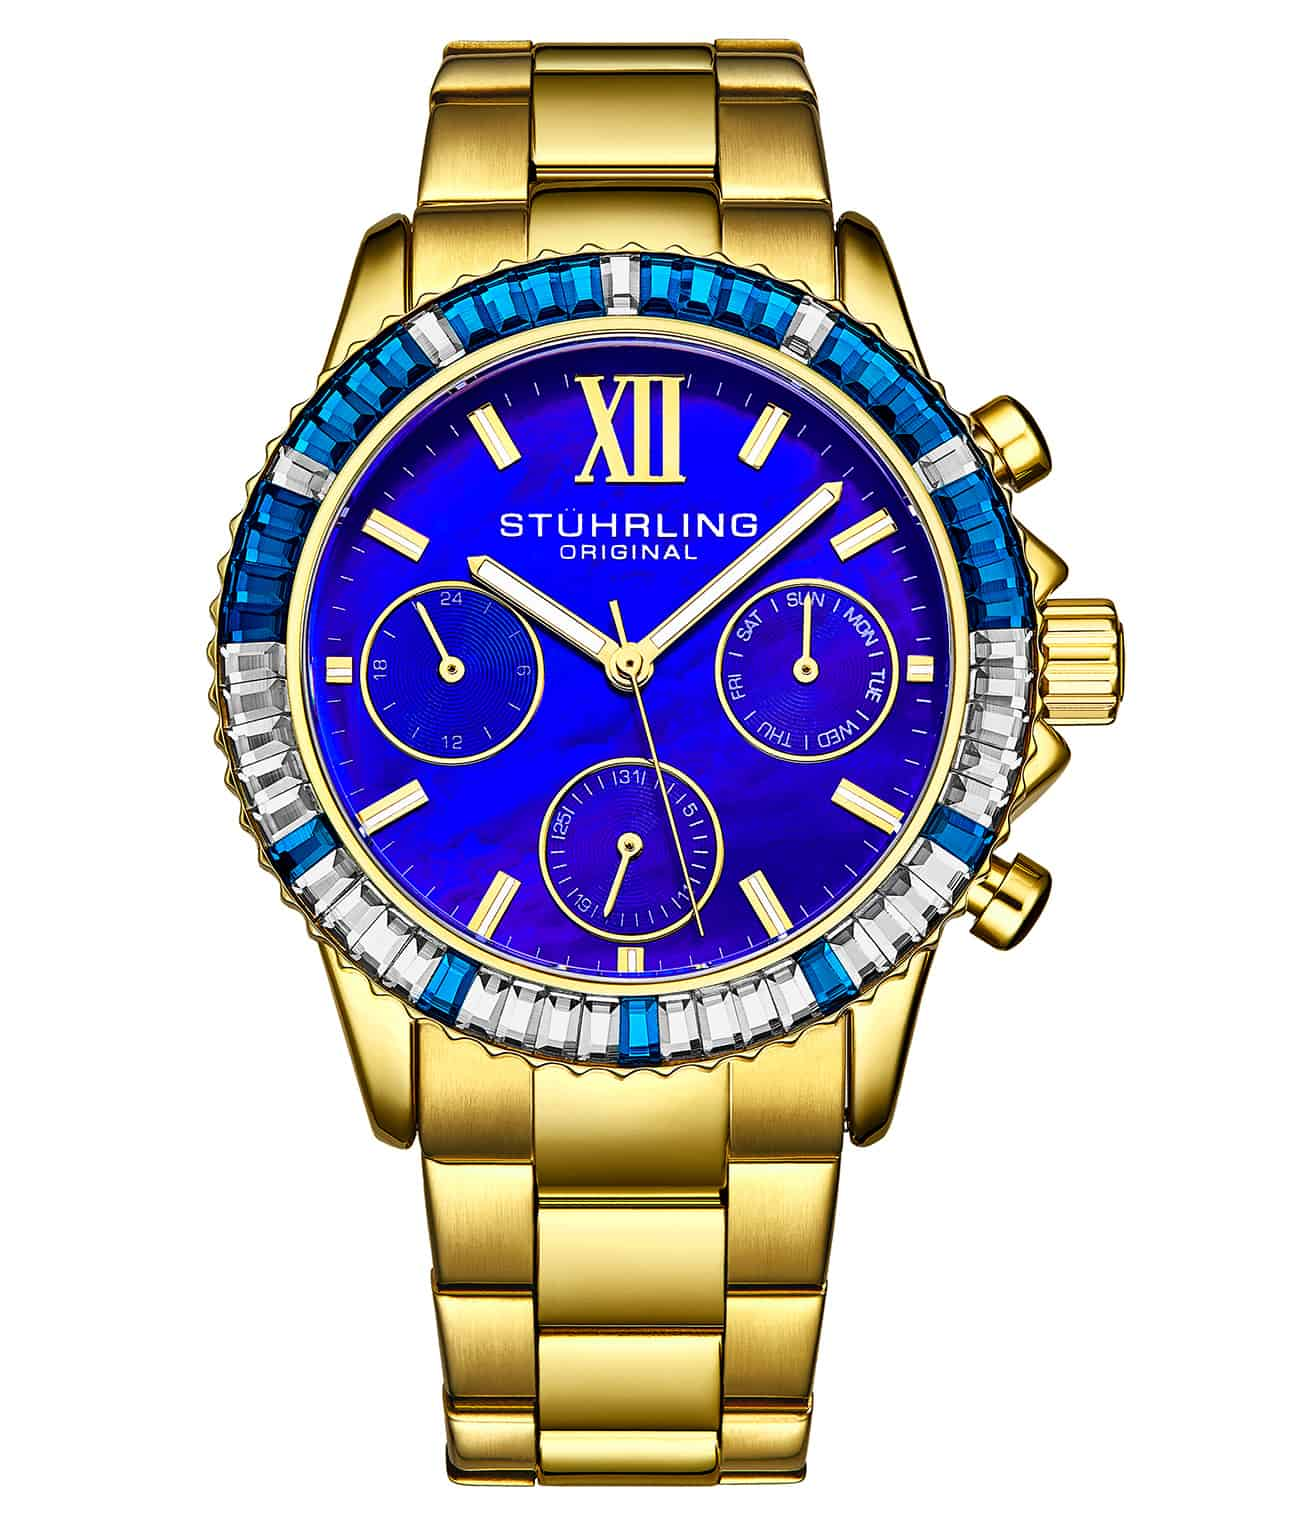 Blue Dial / Gold Case / Gold Band